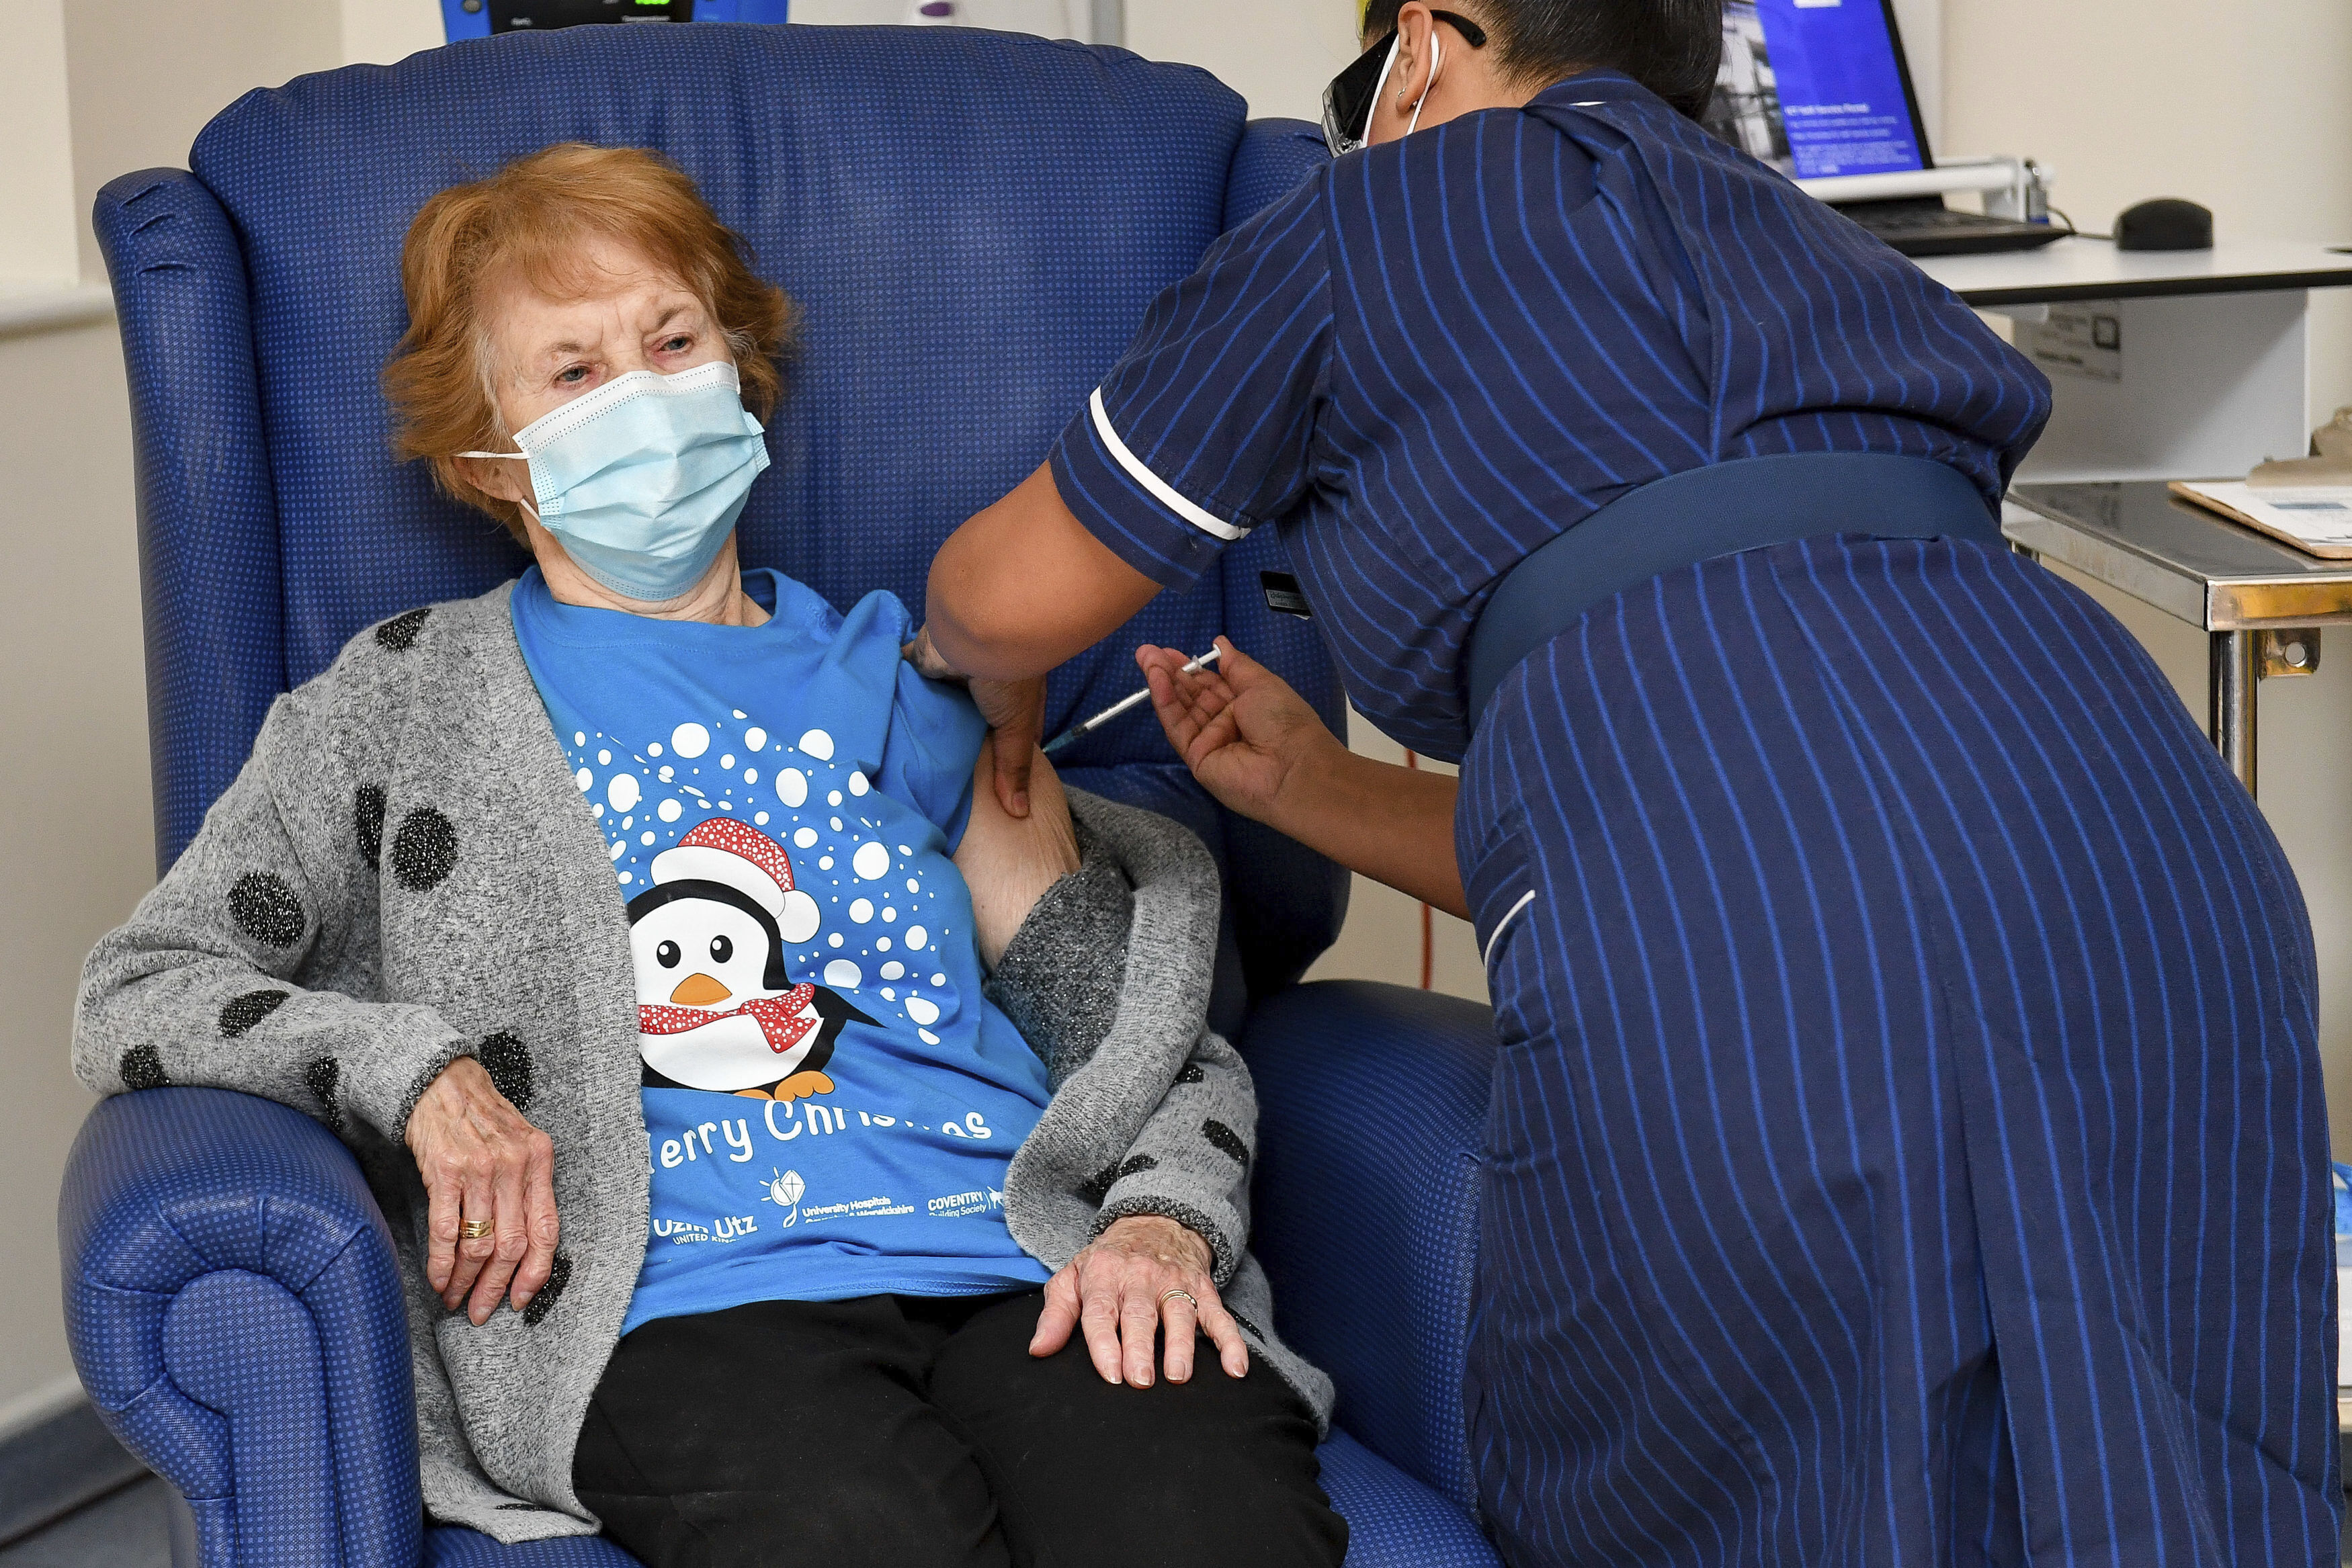 90 year old Margaret Keenan, the first patient in the UK to receive the Pfizer-BioNTech COVID-19 vaccine, administered by nurse May Parsons at University Hospital, Coventry, England, Tuesday, December 8, 2020. The United Kingdom, one of the countries hardest hit by the coronavirus, is beginning its vaccination campaign, a key step toward eventually ending the pandemic. Photo: Jacob King/Pool via AP